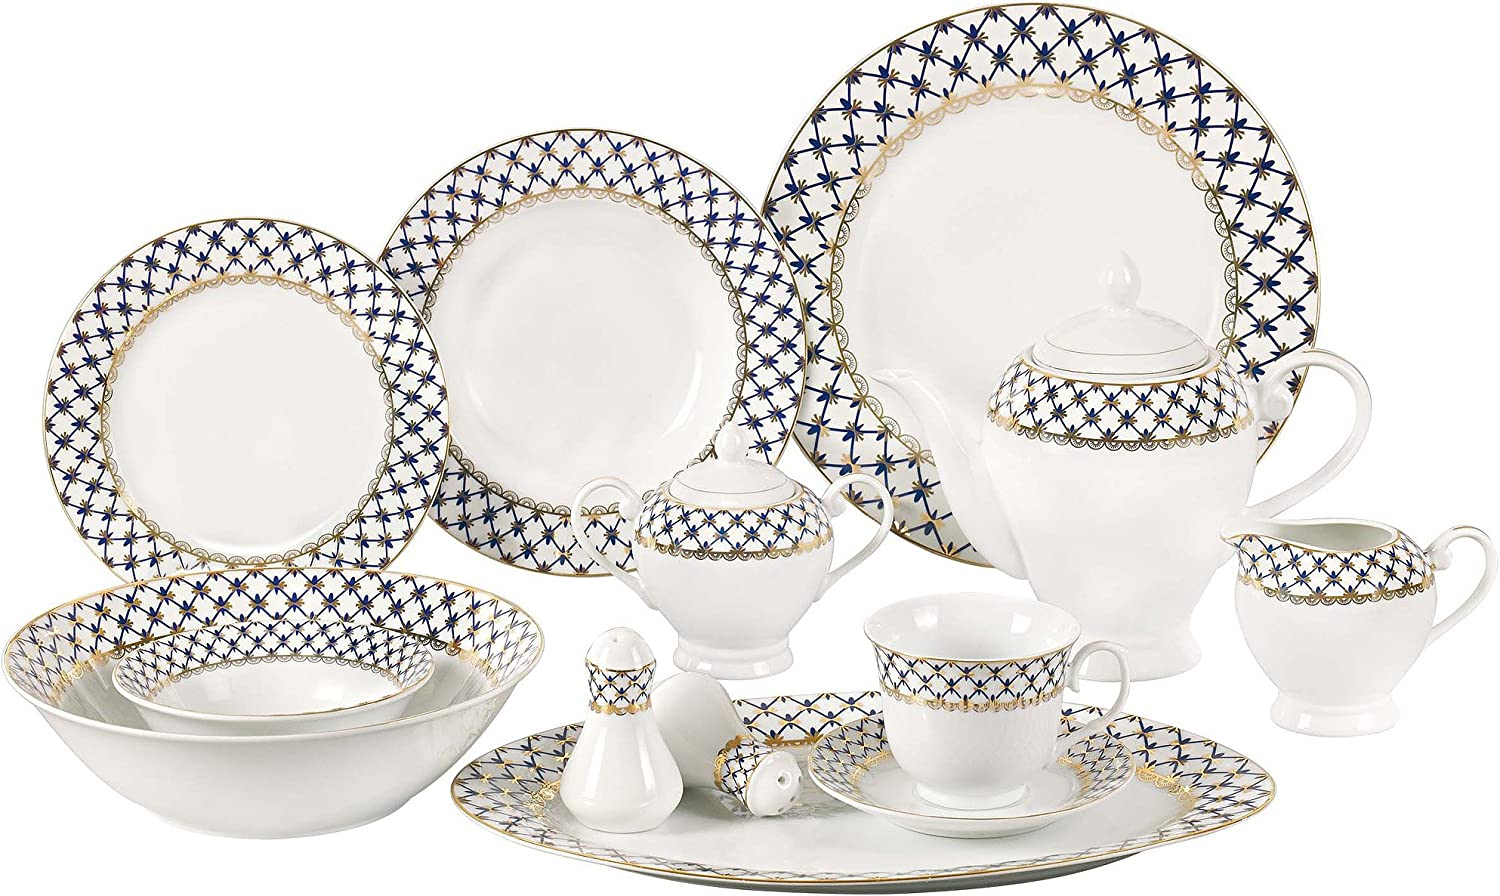 Lorren Home Trends 57-Piece Porcelain Dinnerware Set with Cobalt Blue Lattice Border, Service for 8